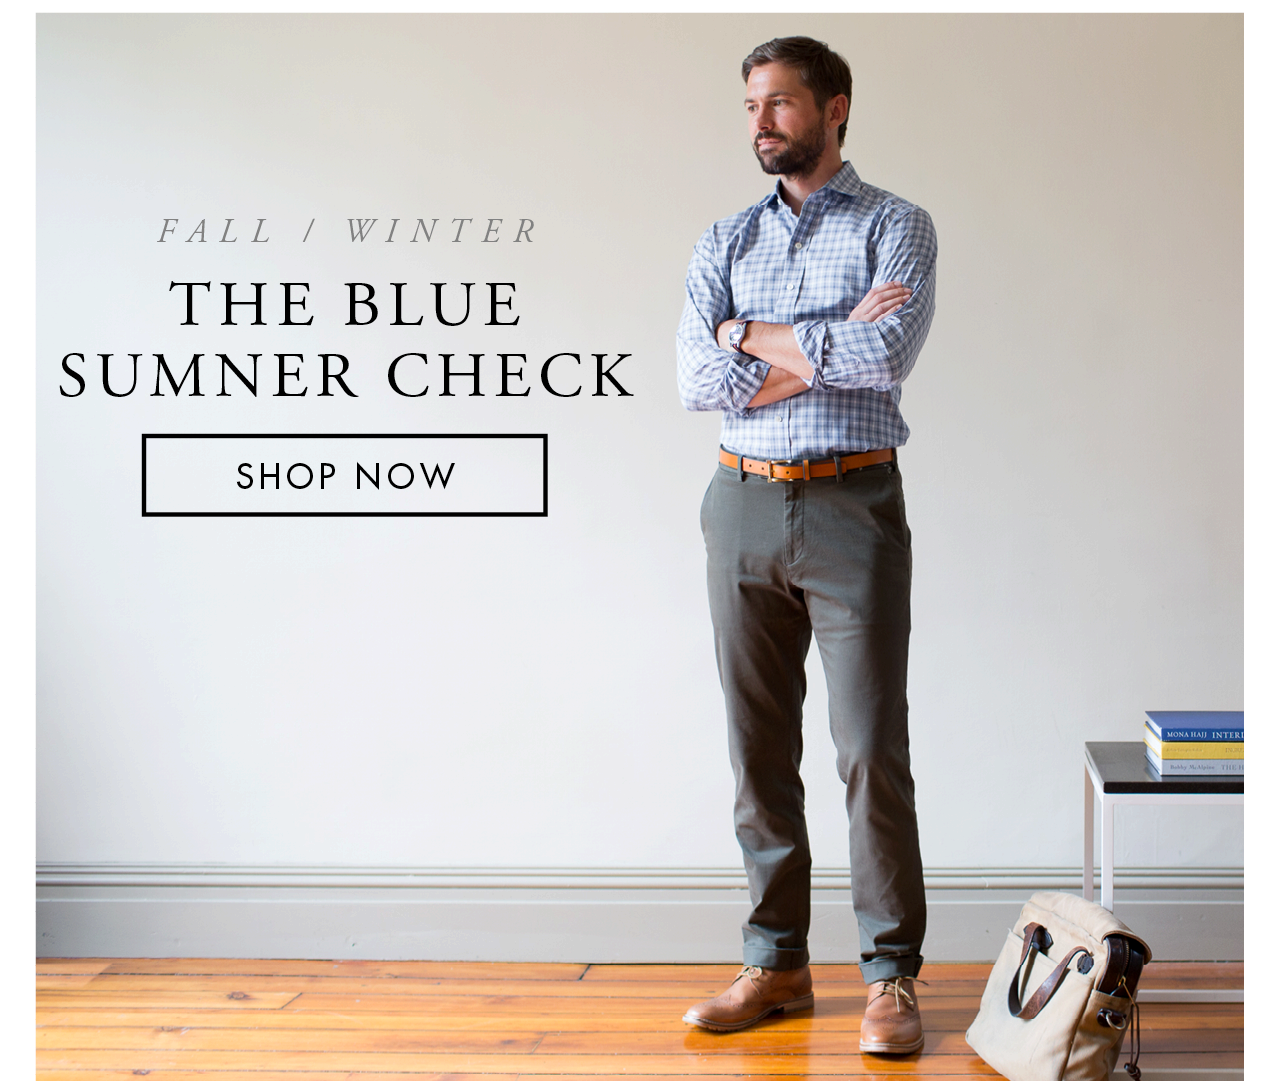 The Blue Sumner Check